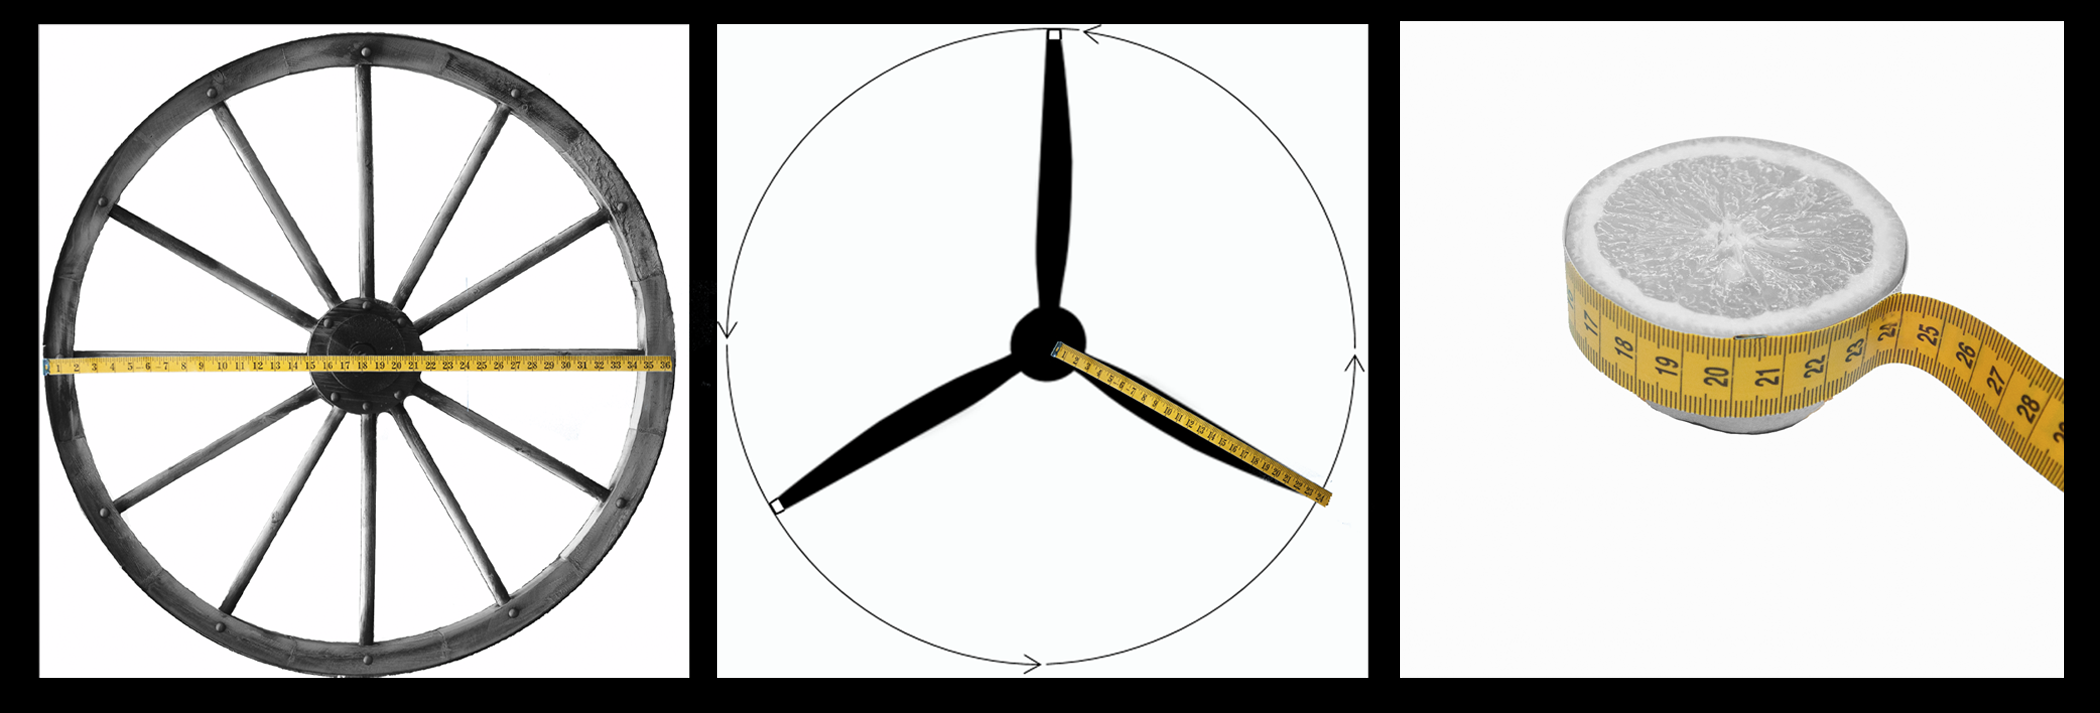 A picture of three different circular objects. The leftmost object is a wagon wheel with a measuring tool starting from one point on the wheel, goes through the wheel center to a point on the other side of the wheel. The center object is a plane propellor with three identical propellor blades. A measuring tool starts from the center of the propellor and goes to the end of the blade. The third object is of a sliced orange. A measuring tool goes around the entire circular region of the orange.